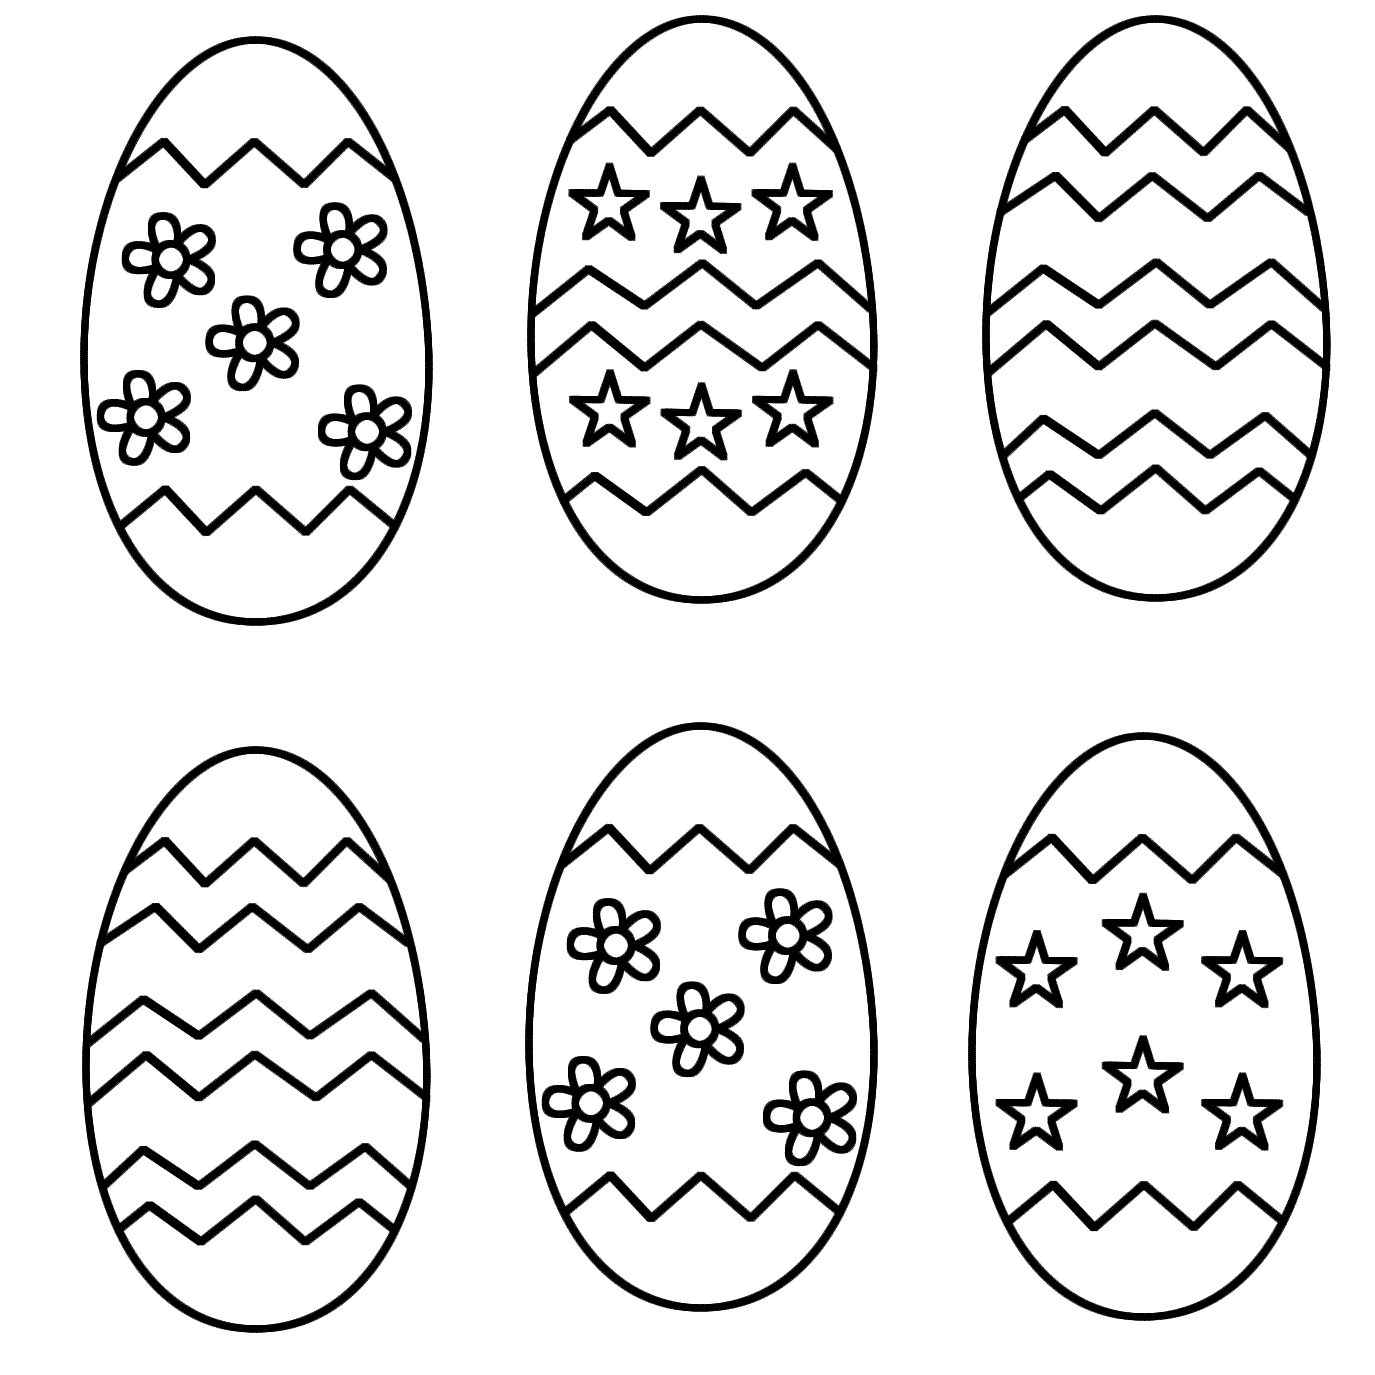 Easter Coloring Pages for Childrens Printable for Free Printable Of Easter Coloring Pages for Kids Crazy Little Projects Printable